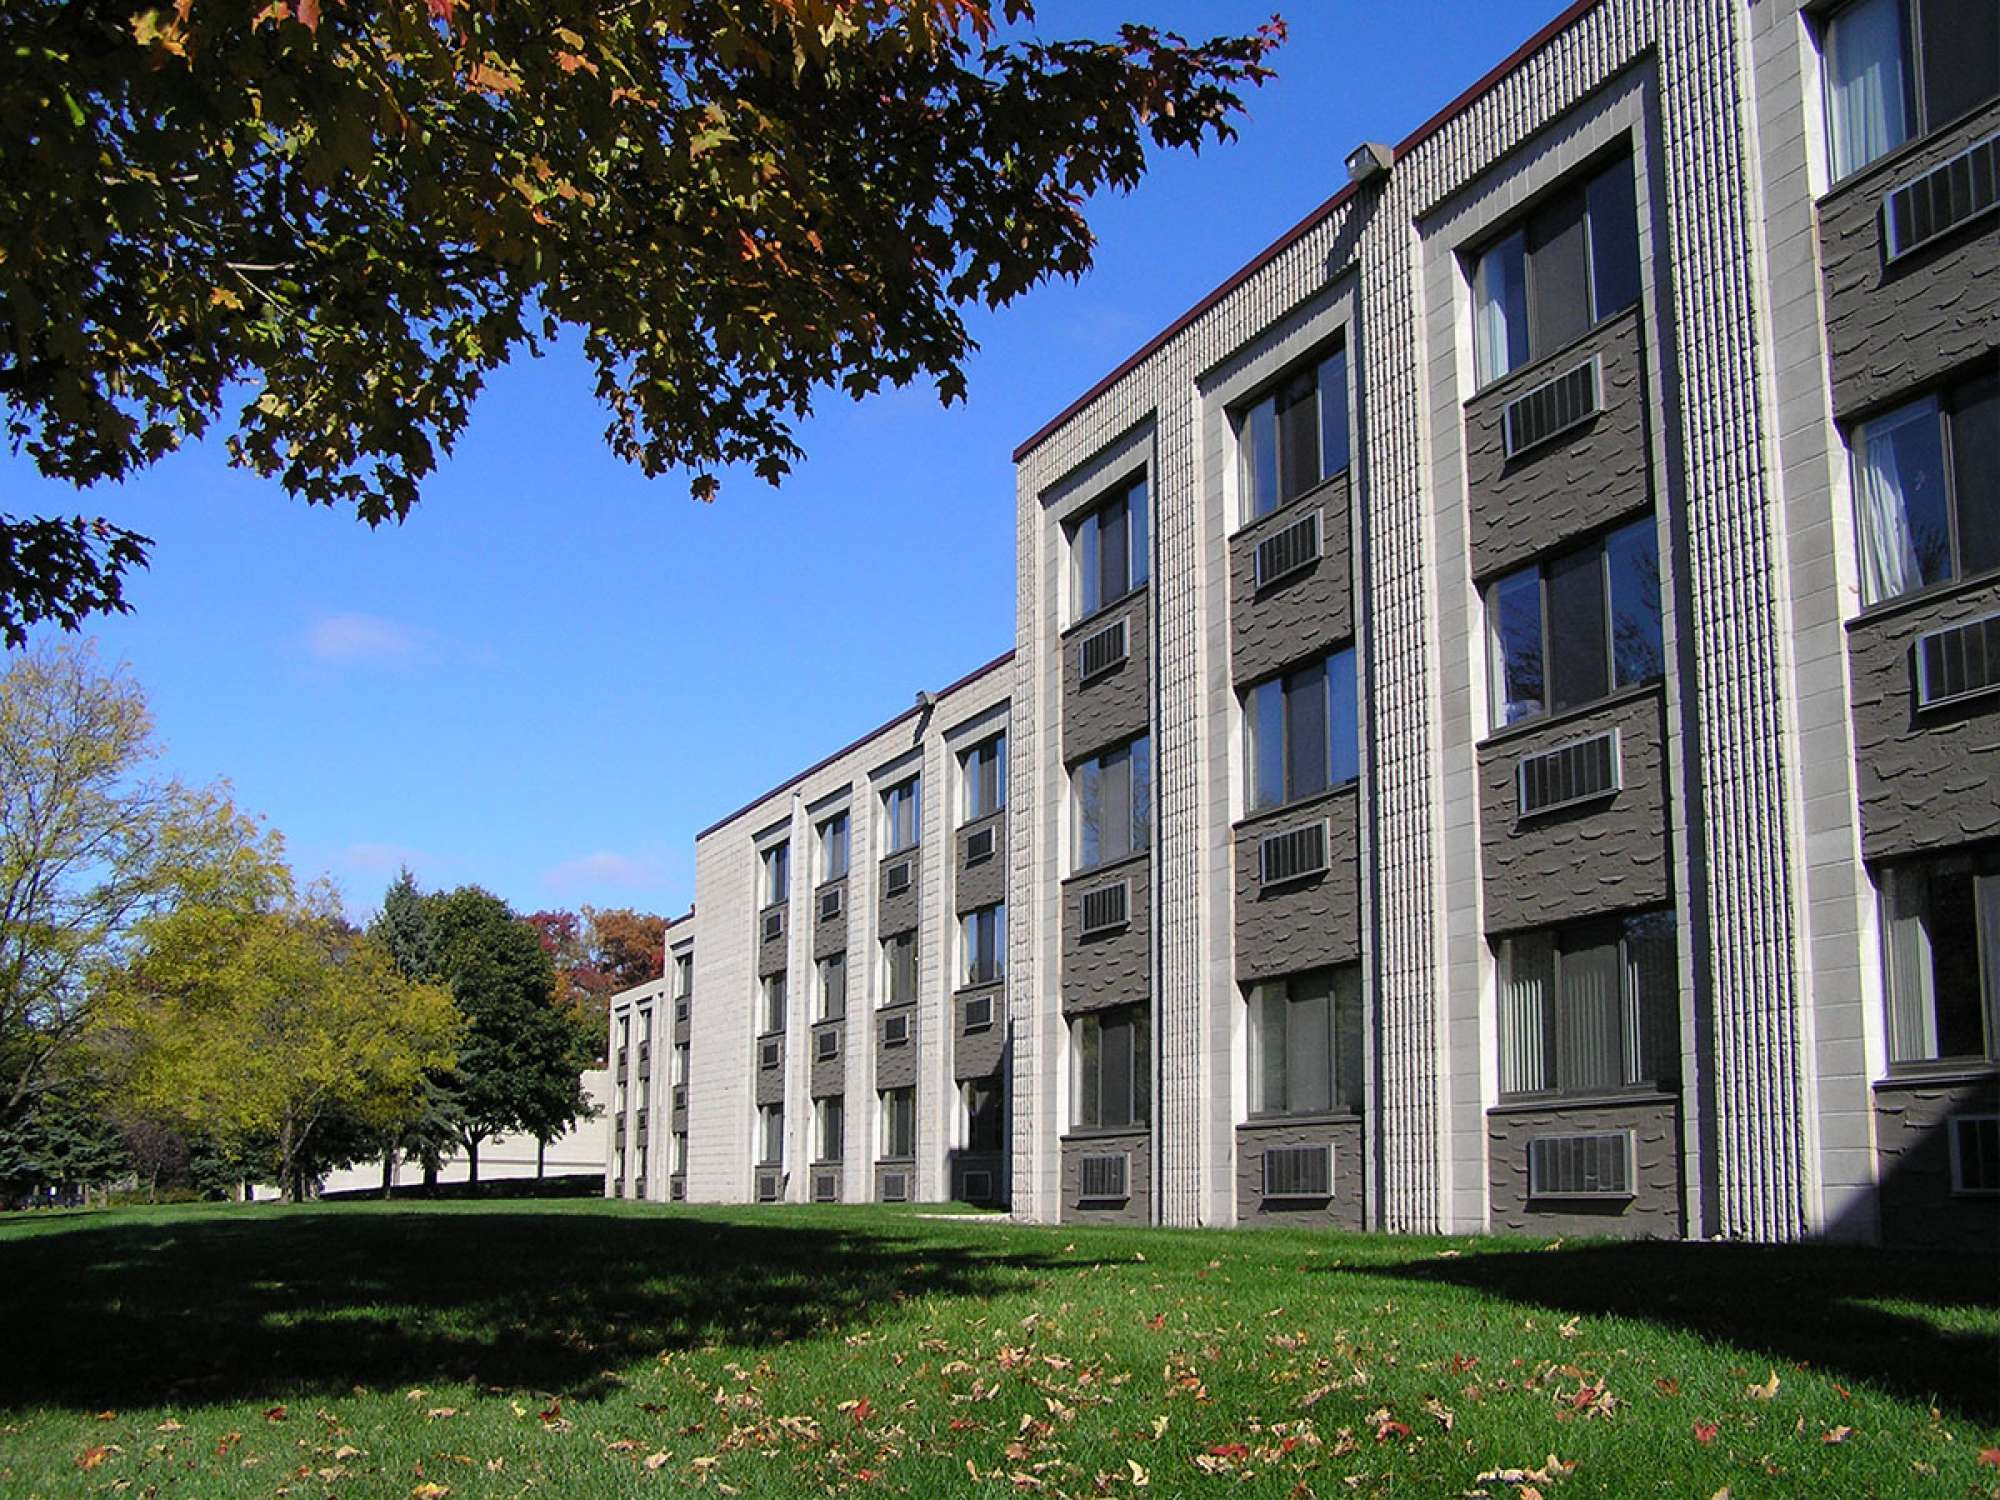 Exterior view of Hartill Hall